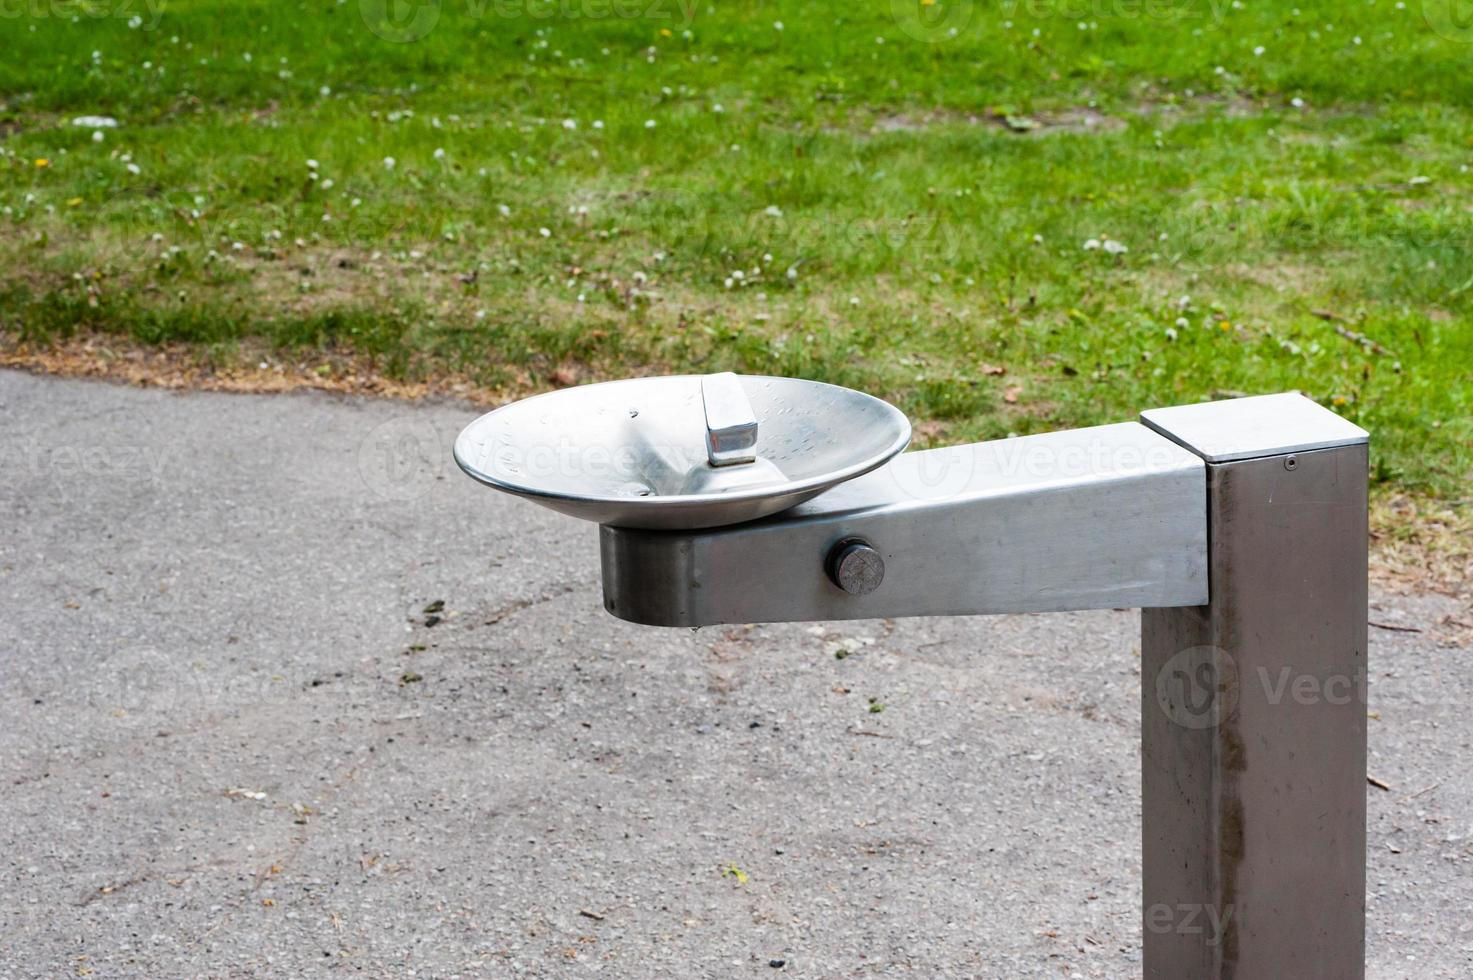 Metal drinking fountain in park photo